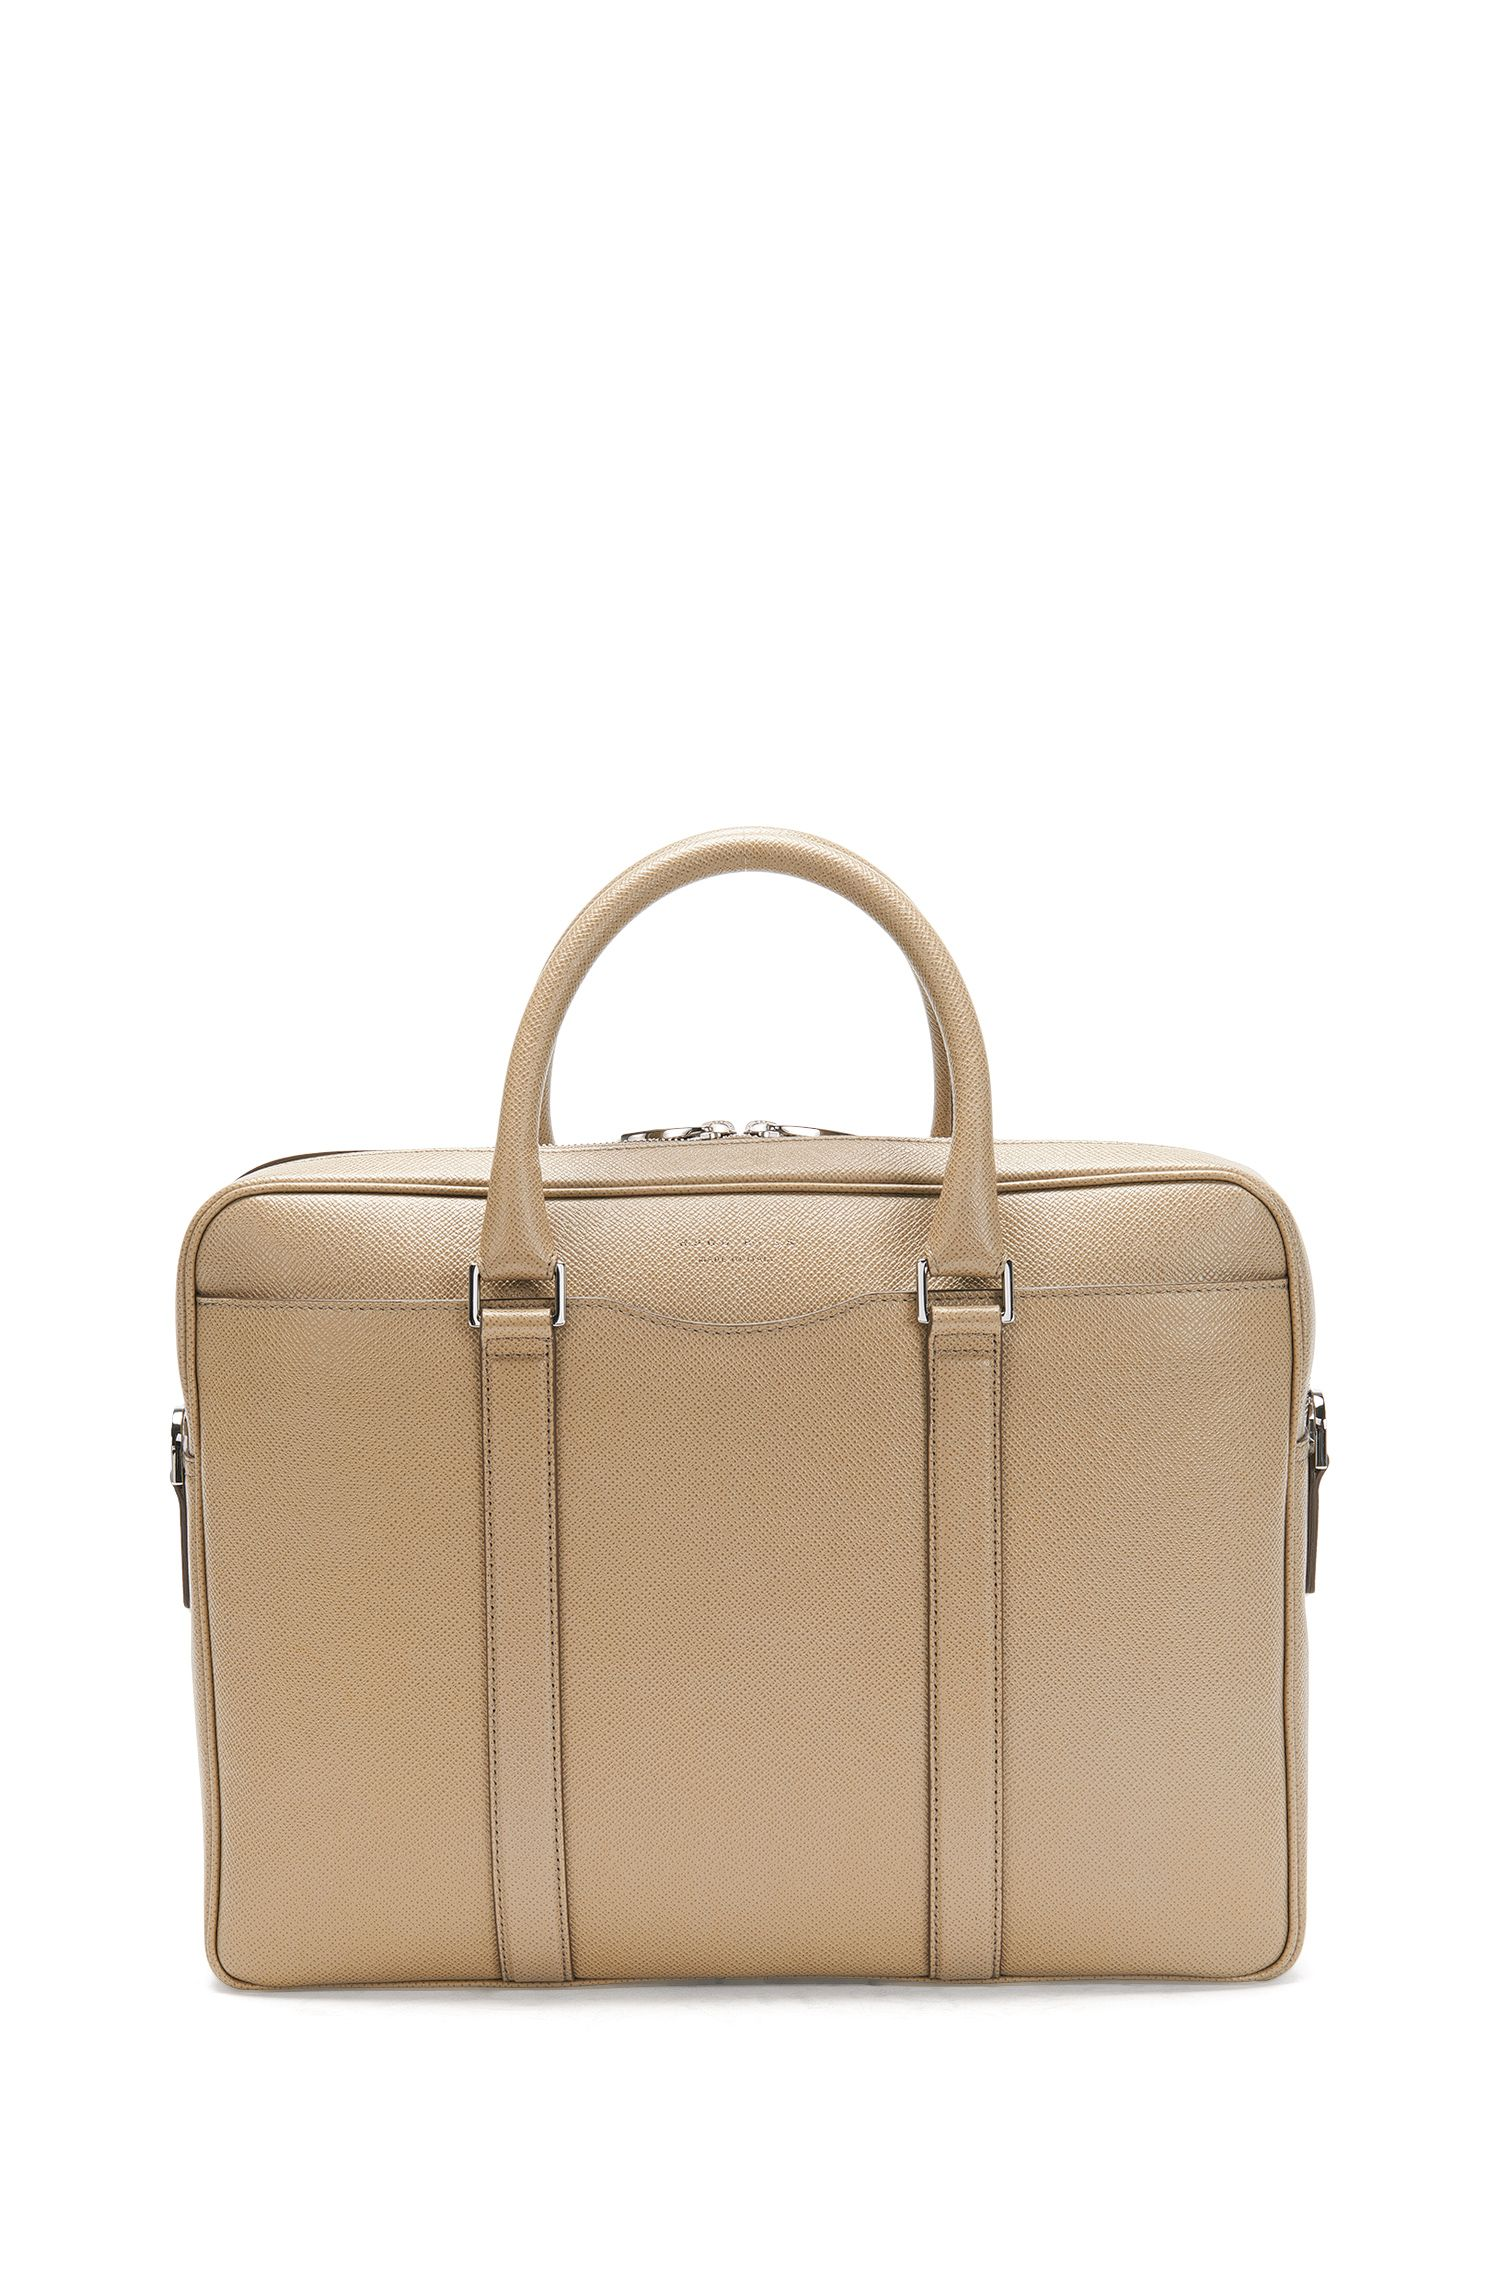 Signature Collection bag in palmellato leather by BOSS